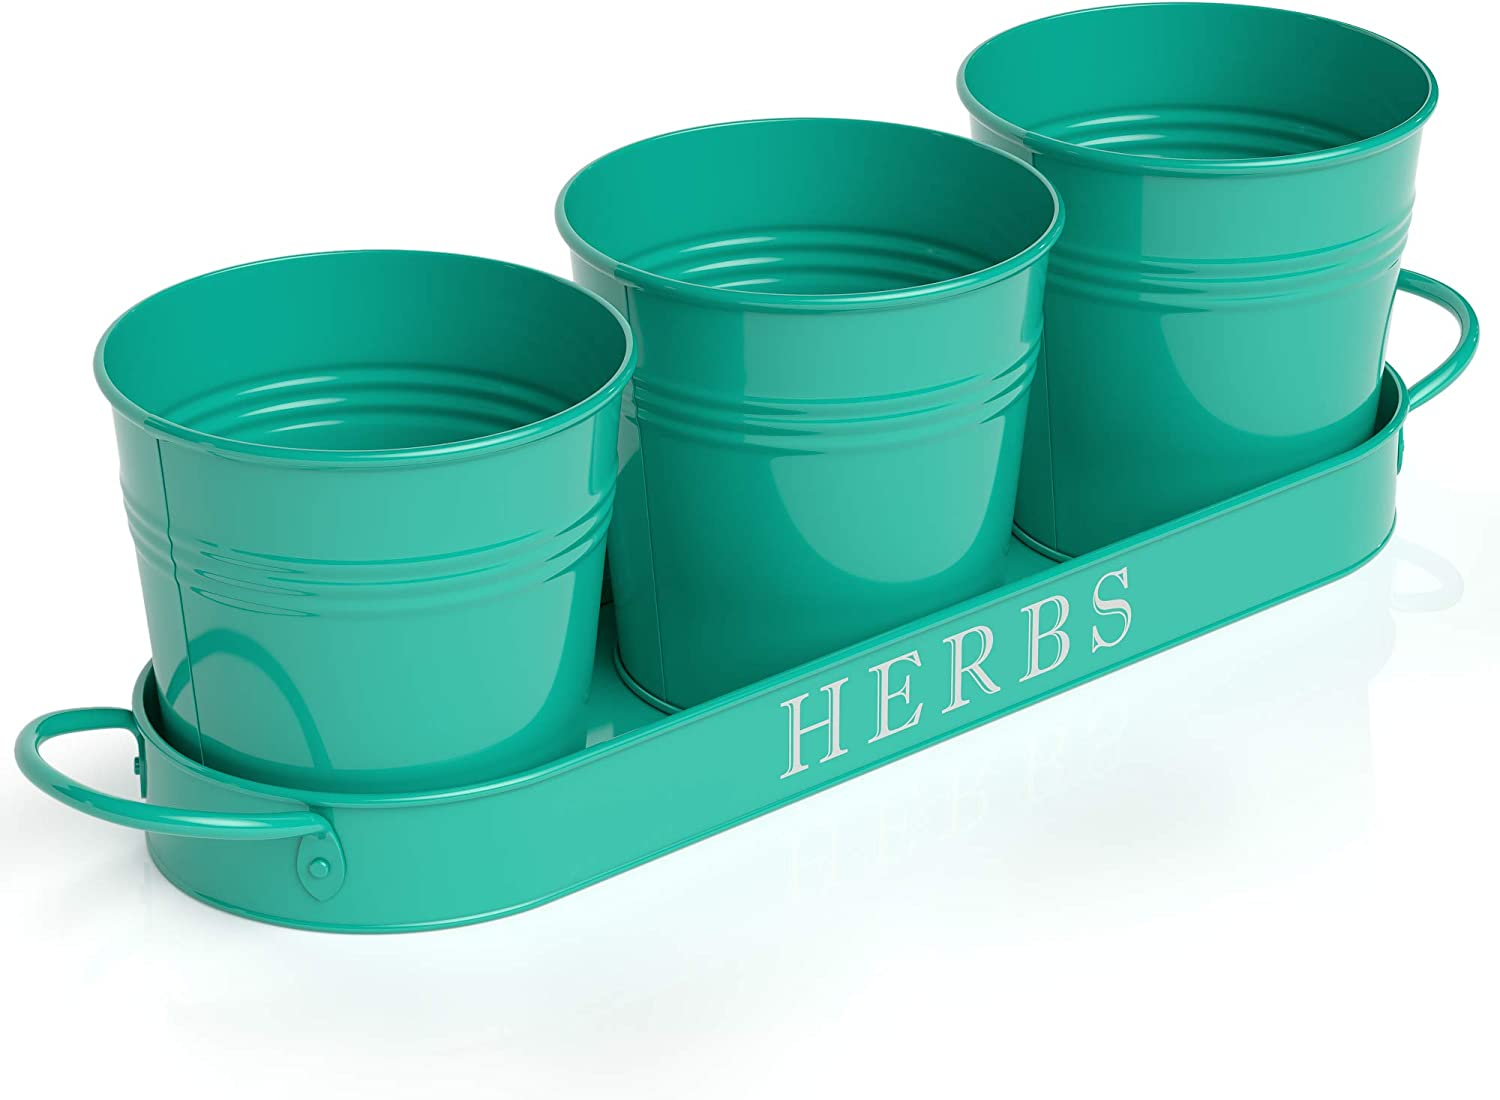 "Barnyard Designs Succulent Herb Pot Planter with Tray for Indoor and Outdoor Use French Cottage Turquoise Metal Herb Plant Holder (Set of 3, 4.25"" x 4"" Planters on 12.5"" x 4"" x 1"" Tray)"